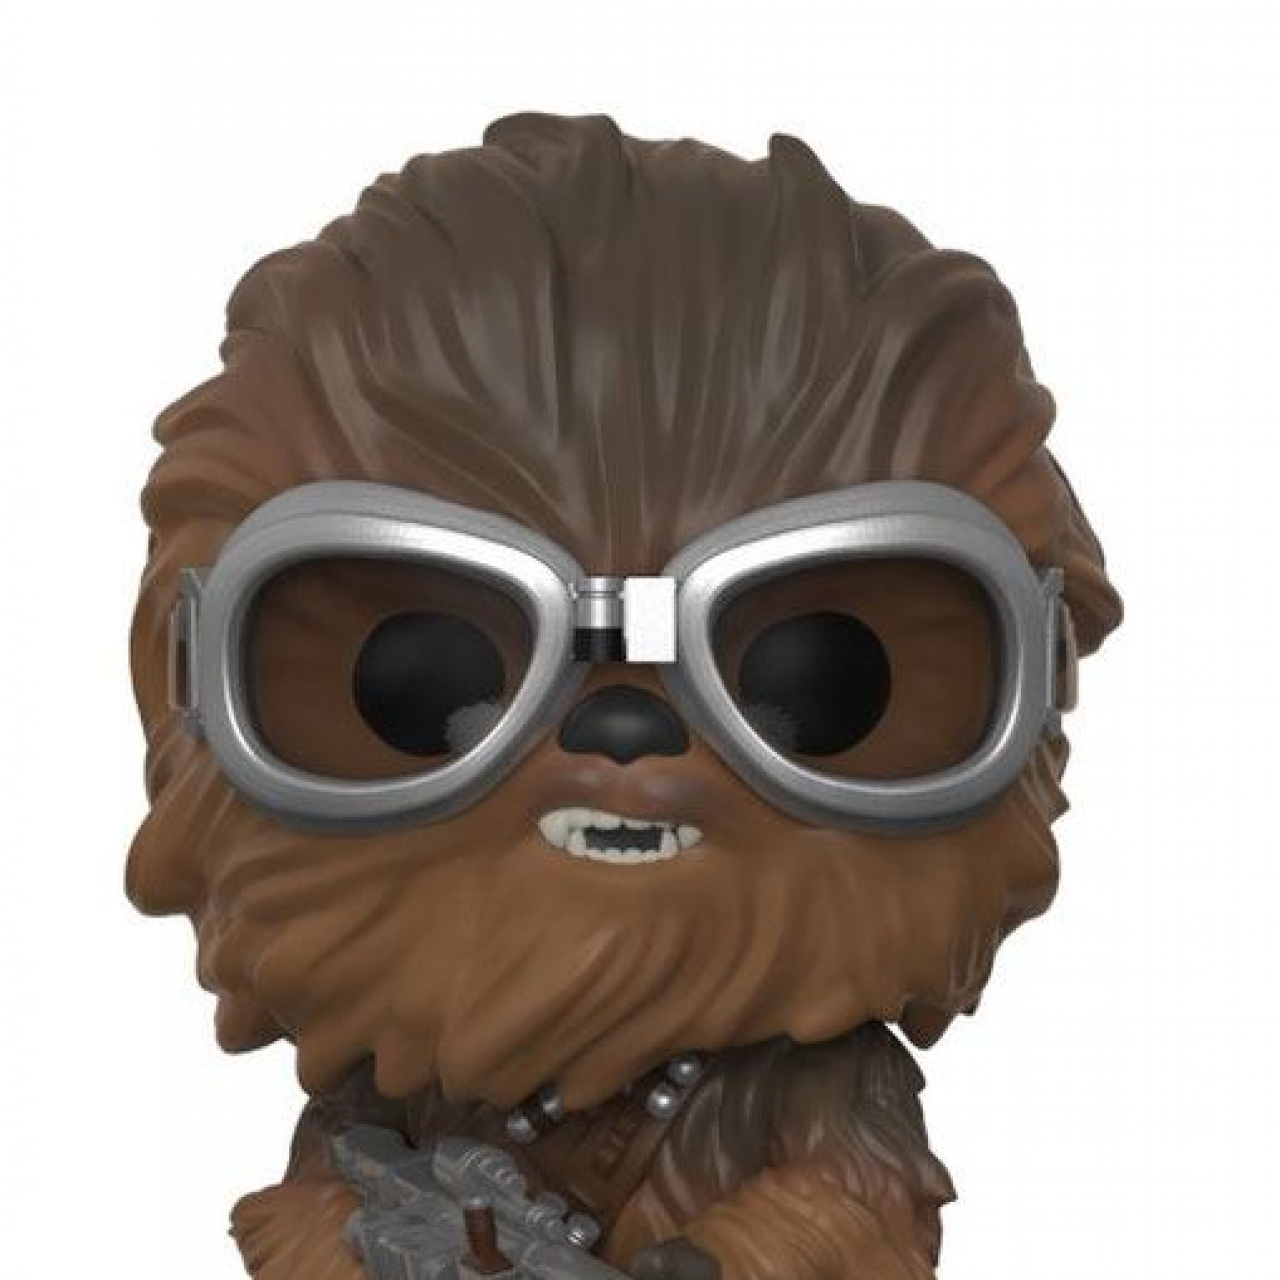 Star Wars Solo POP! Movies Vinyl Bobble-Head Chewbacca with Goggles 9 cm